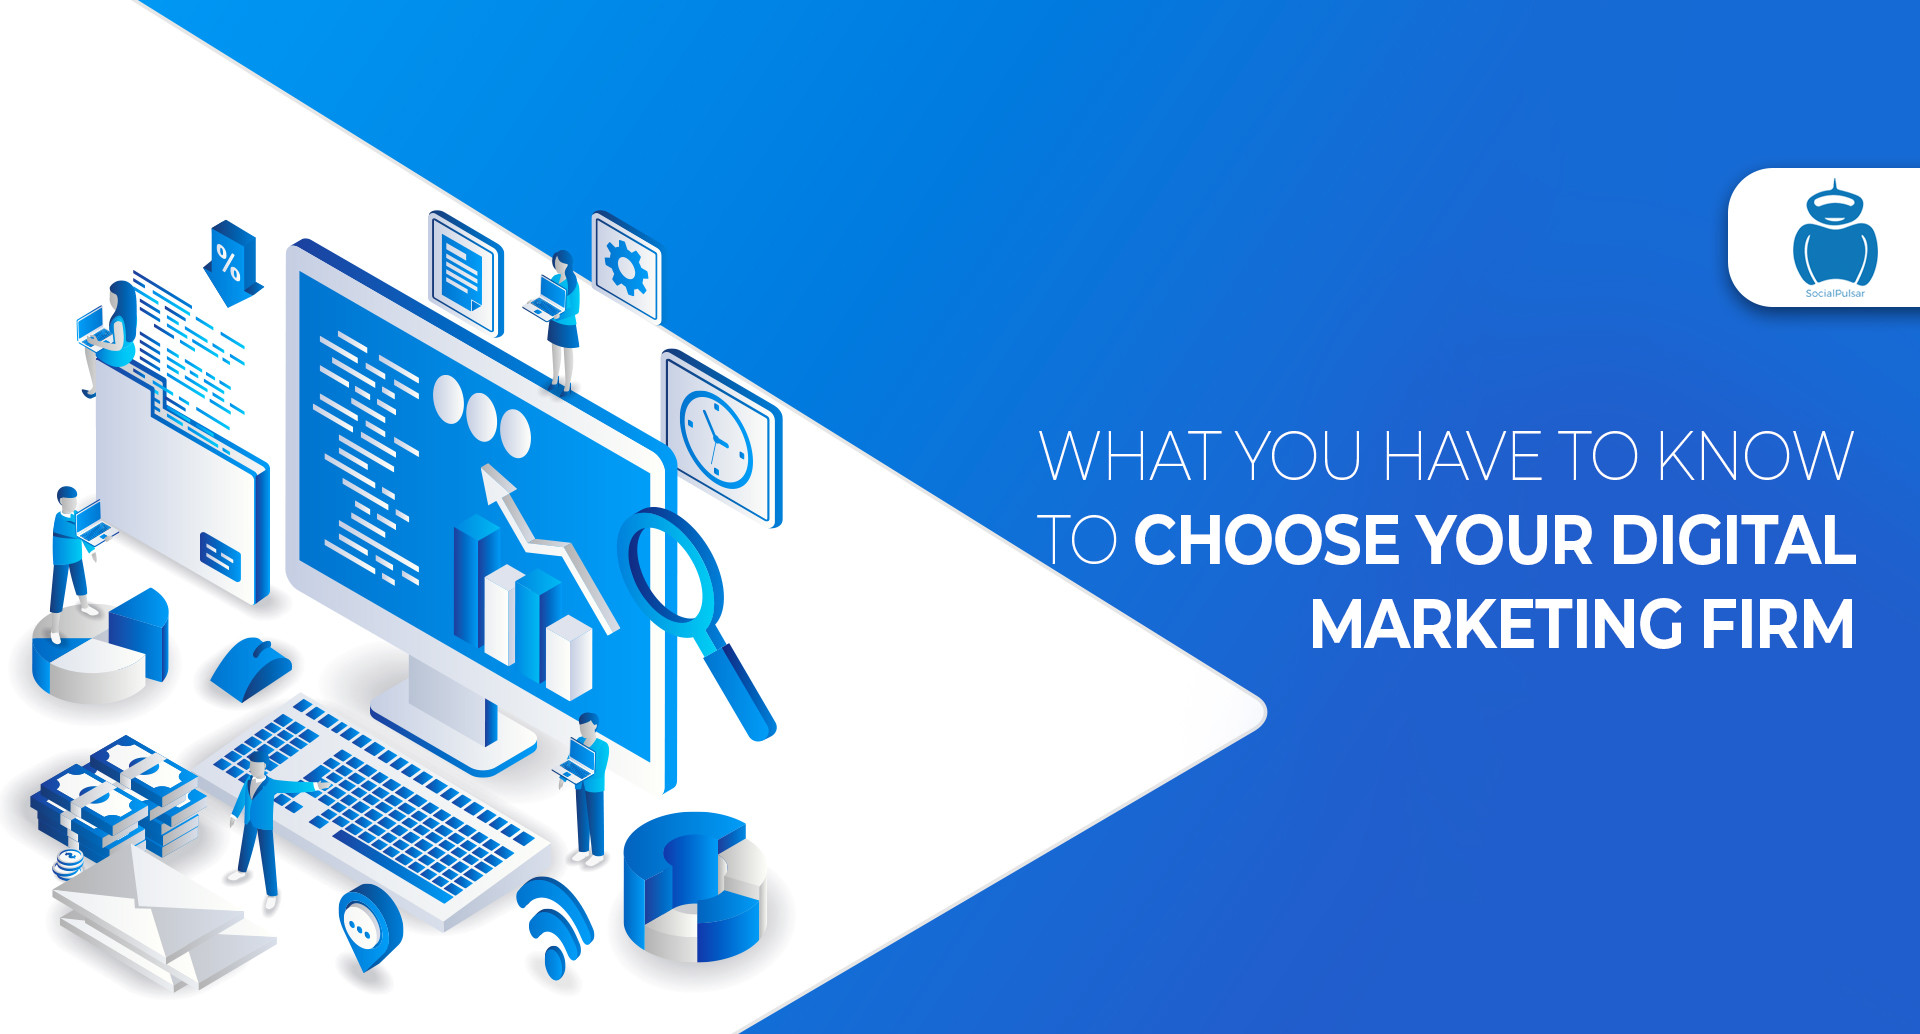 What You Have To Know To Choose Your Digital Marketing Firm